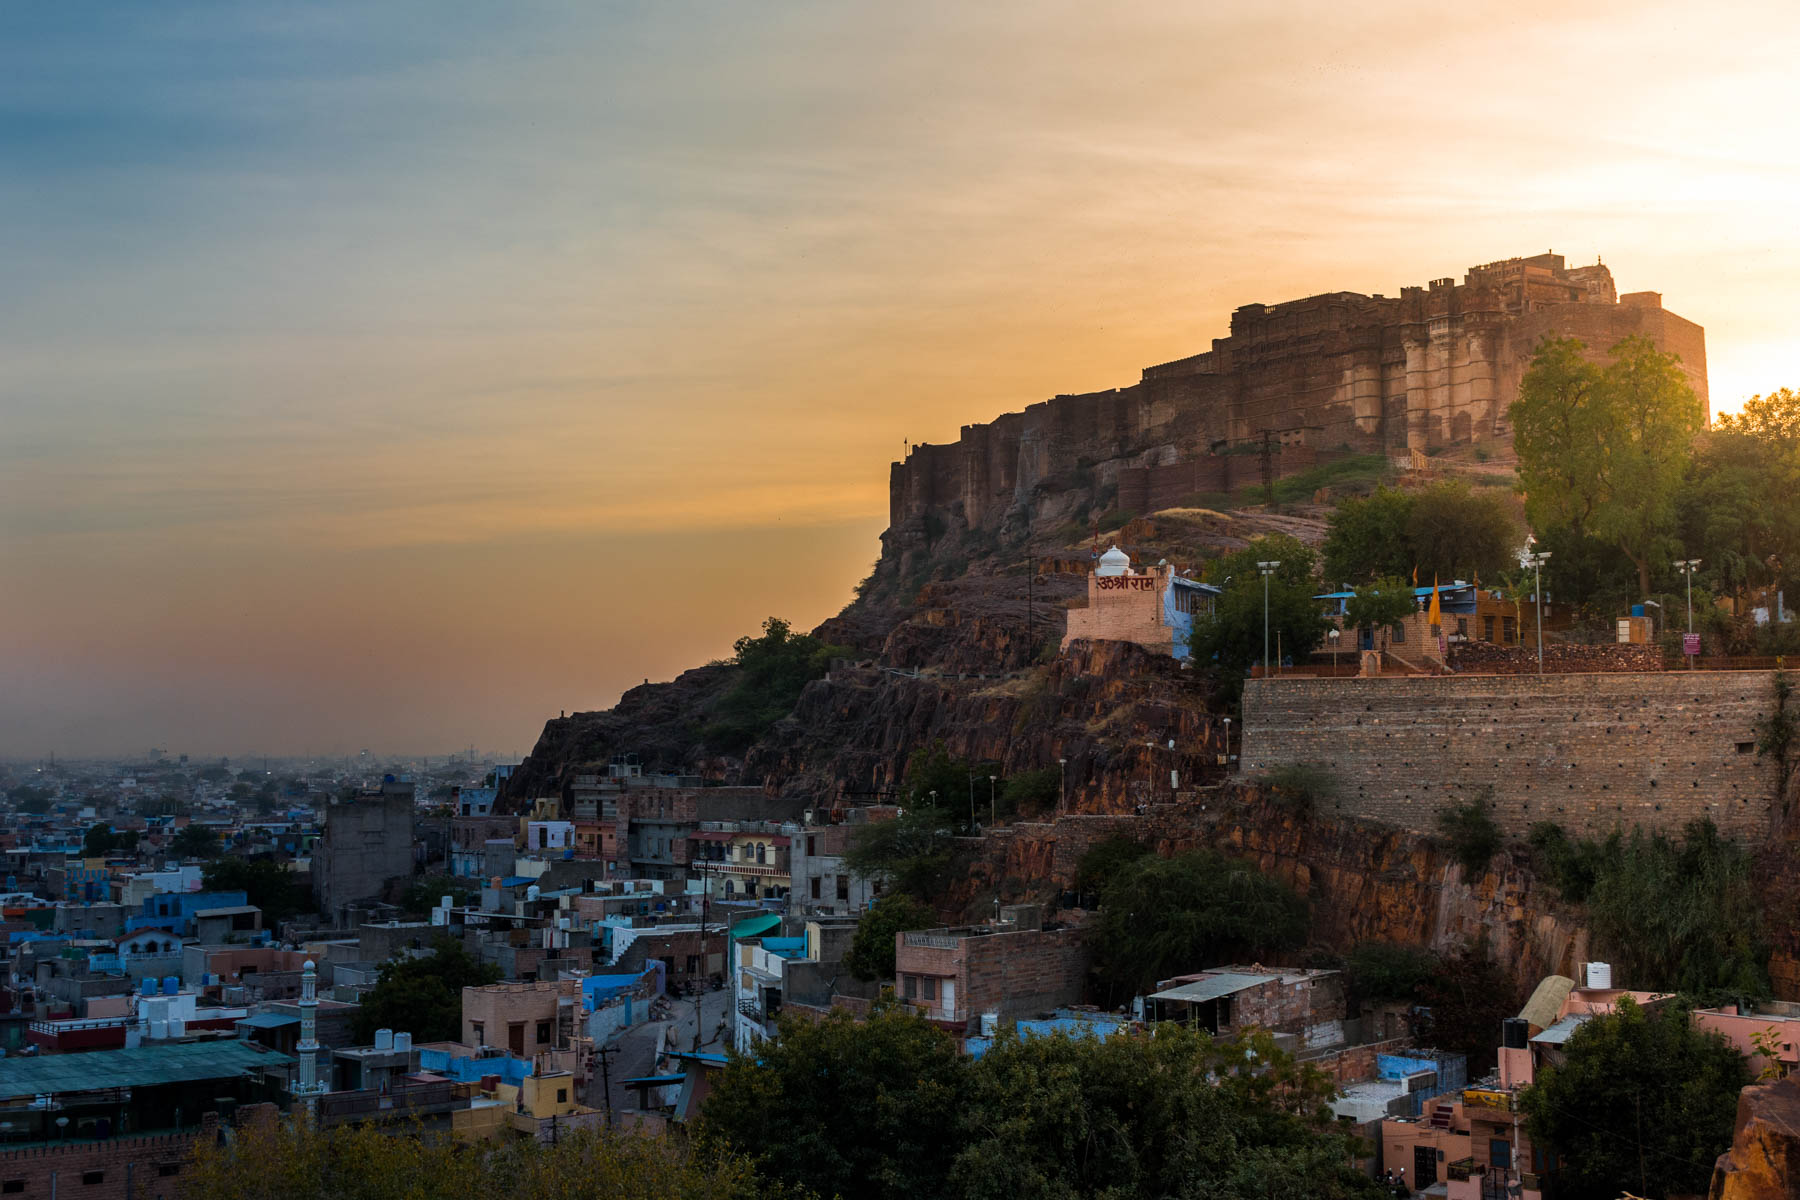 Photo essay about the streets and people of the Blue City of Jodhpur, Rajasthan, India - Sunset behind Mehrangarh fort in Jodhpur - Lost With Purpose